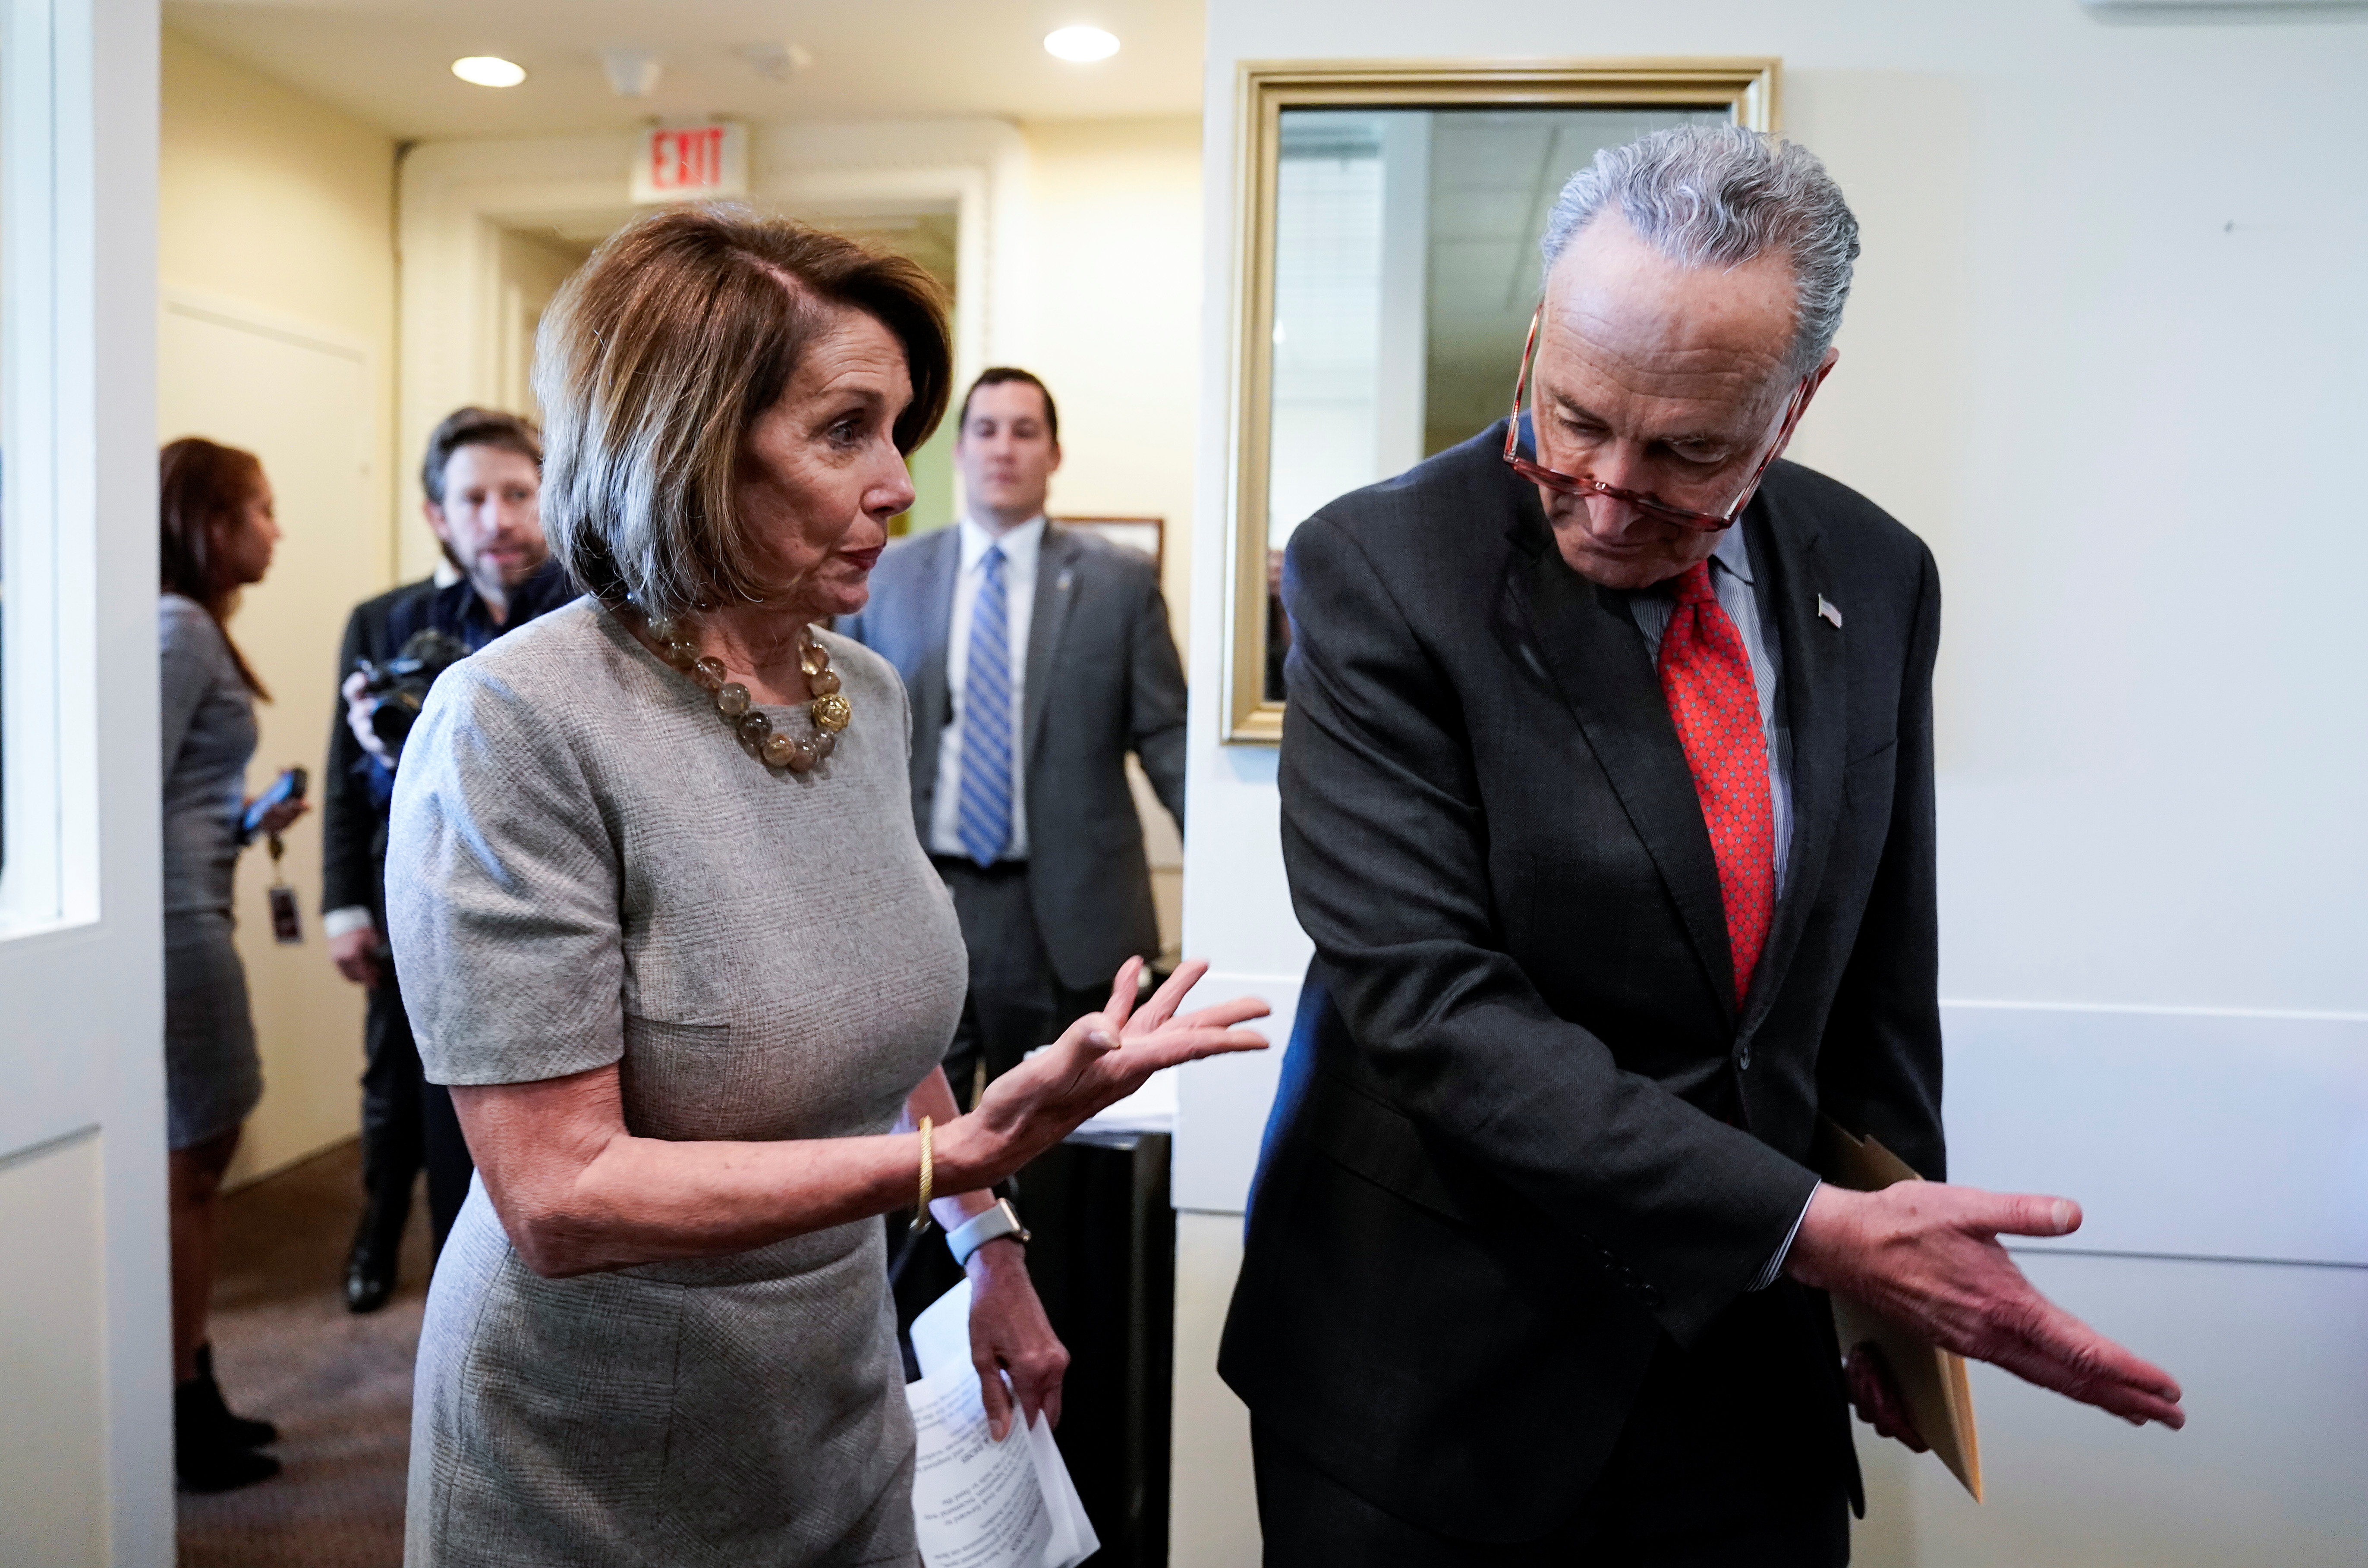 House Speaker Pelosi and Senate Minority Leader Schumer arrive to speak on Capitol Hill in Washington